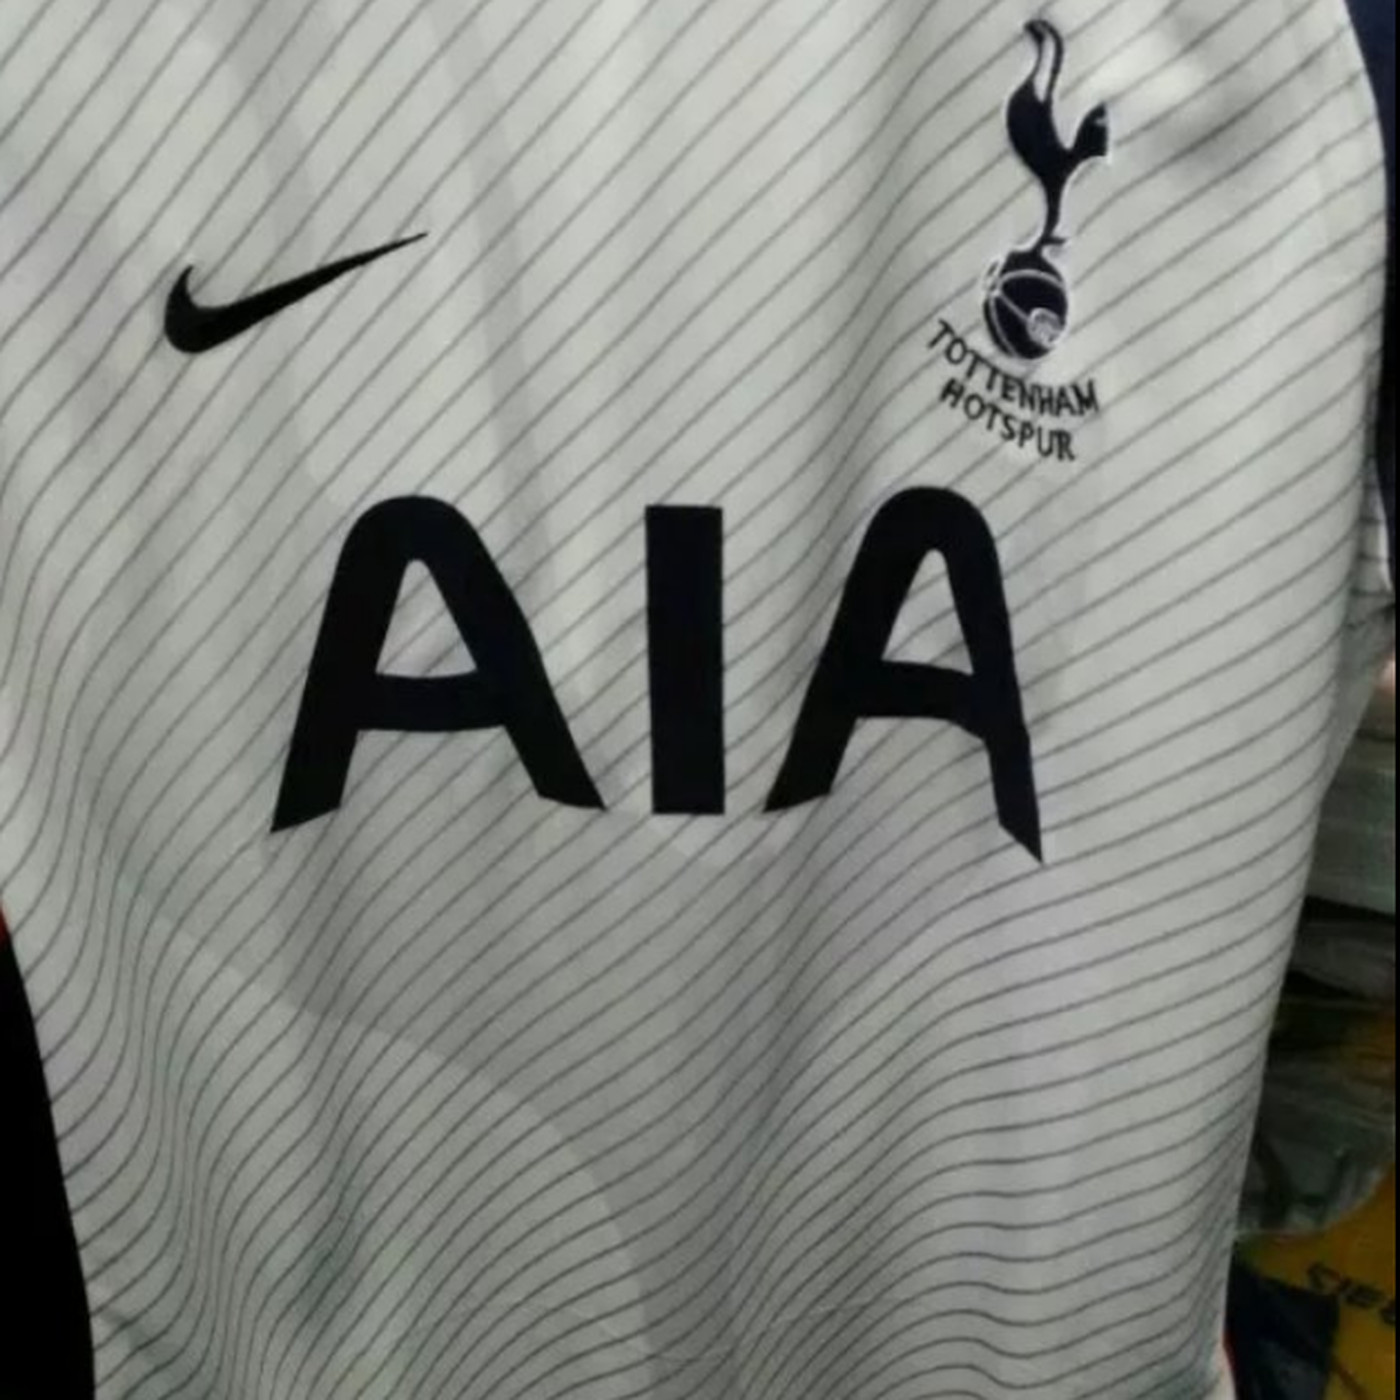 58422ae9b6b Did Tottenham Hotspur's 2017-18 Nike kits just leak? - Cartilage ...